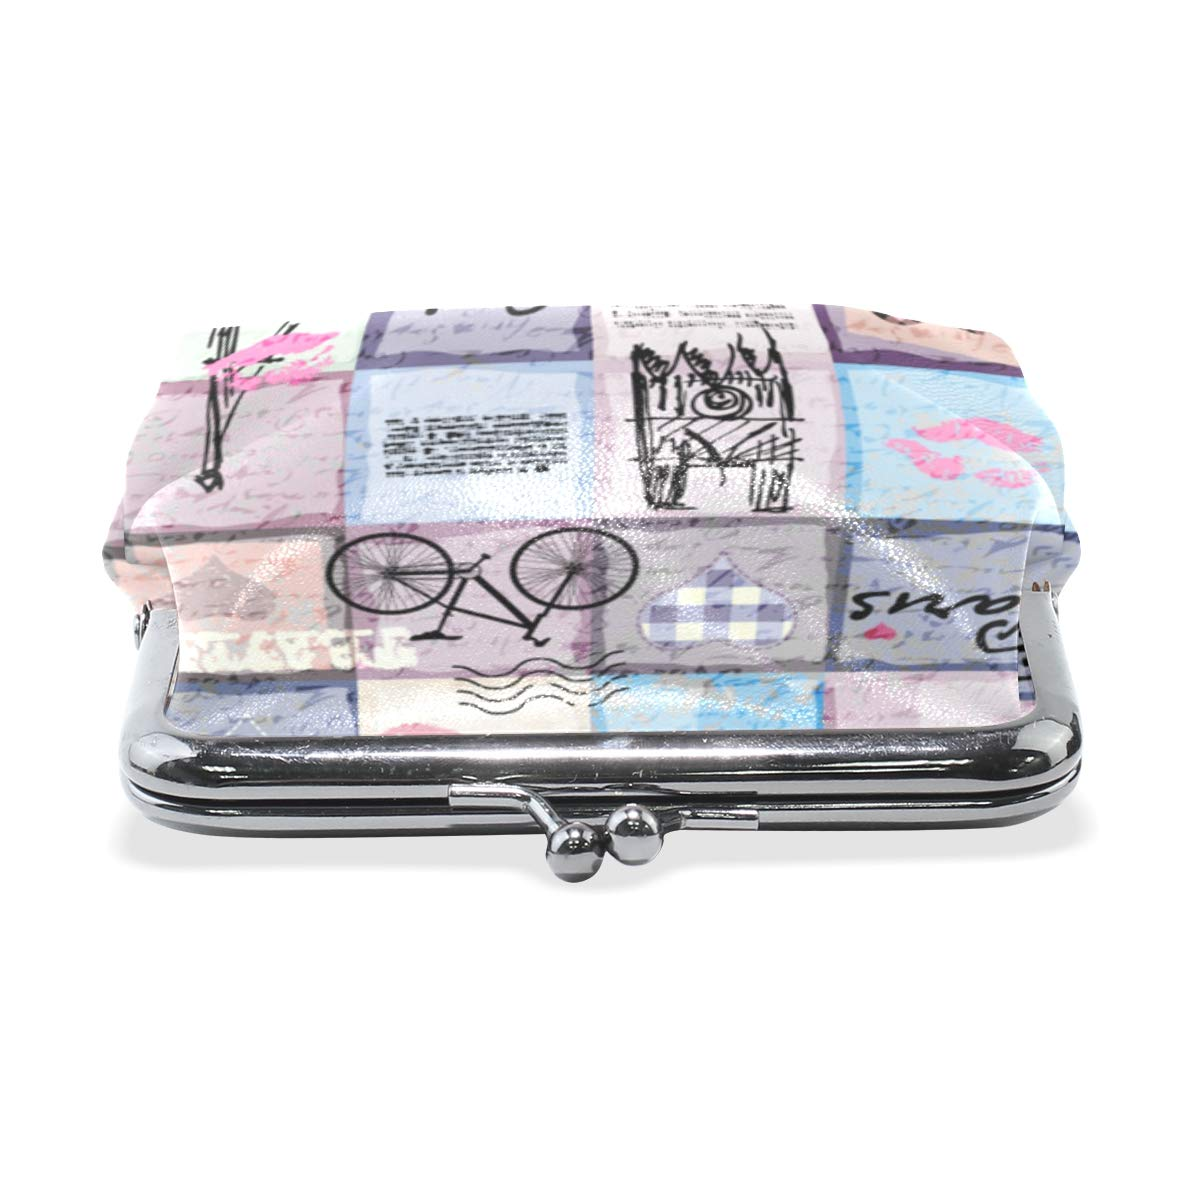 Retro Scrapbook Collage Paris Coin Purse Buckle Vintage PU Pouch Kiss-lock Wallet for Women Girl